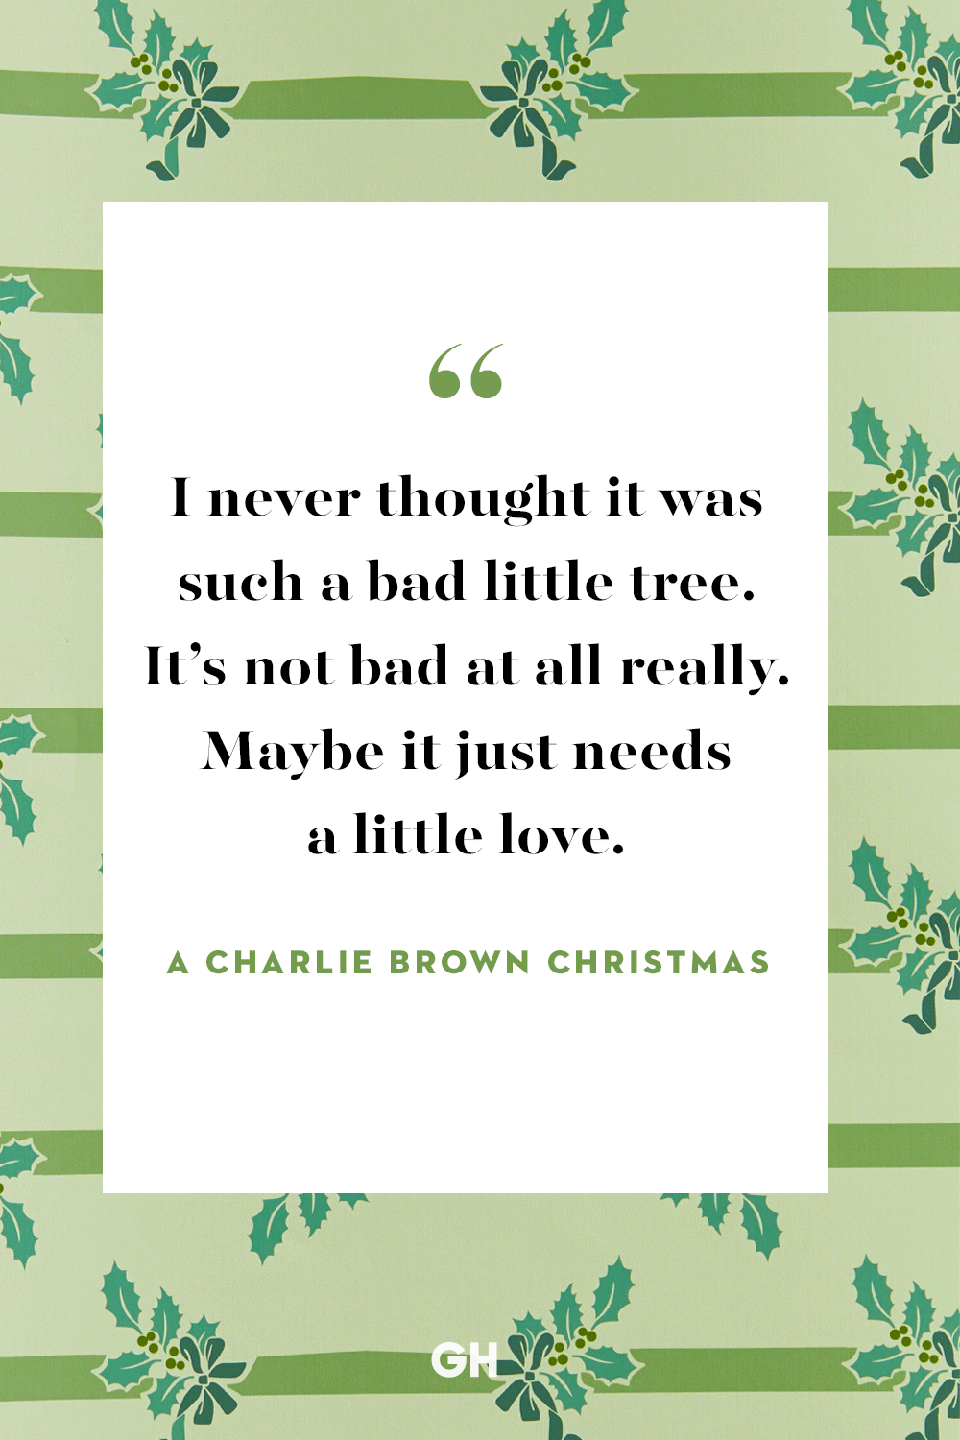 "<p>I never thought it was such a bad little tree. It's not bad at all really. Maybe it just needs a little love.</p><p><strong>RELATED:</strong> <a href=""https://www.goodhousekeeping.com/holidays/christmas-ideas/g30220963/disney-plus-christmas-movies/"" rel=""nofollow noopener"" target=""_blank"" data-ylk=""slk:The Christmas Movies on Disney+ Are Perfect for Those Who Were Kids in the '90s"" class=""link rapid-noclick-resp"">The Christmas Movies on Disney+ Are Perfect for Those Who Were Kids in the '90s</a></p>"